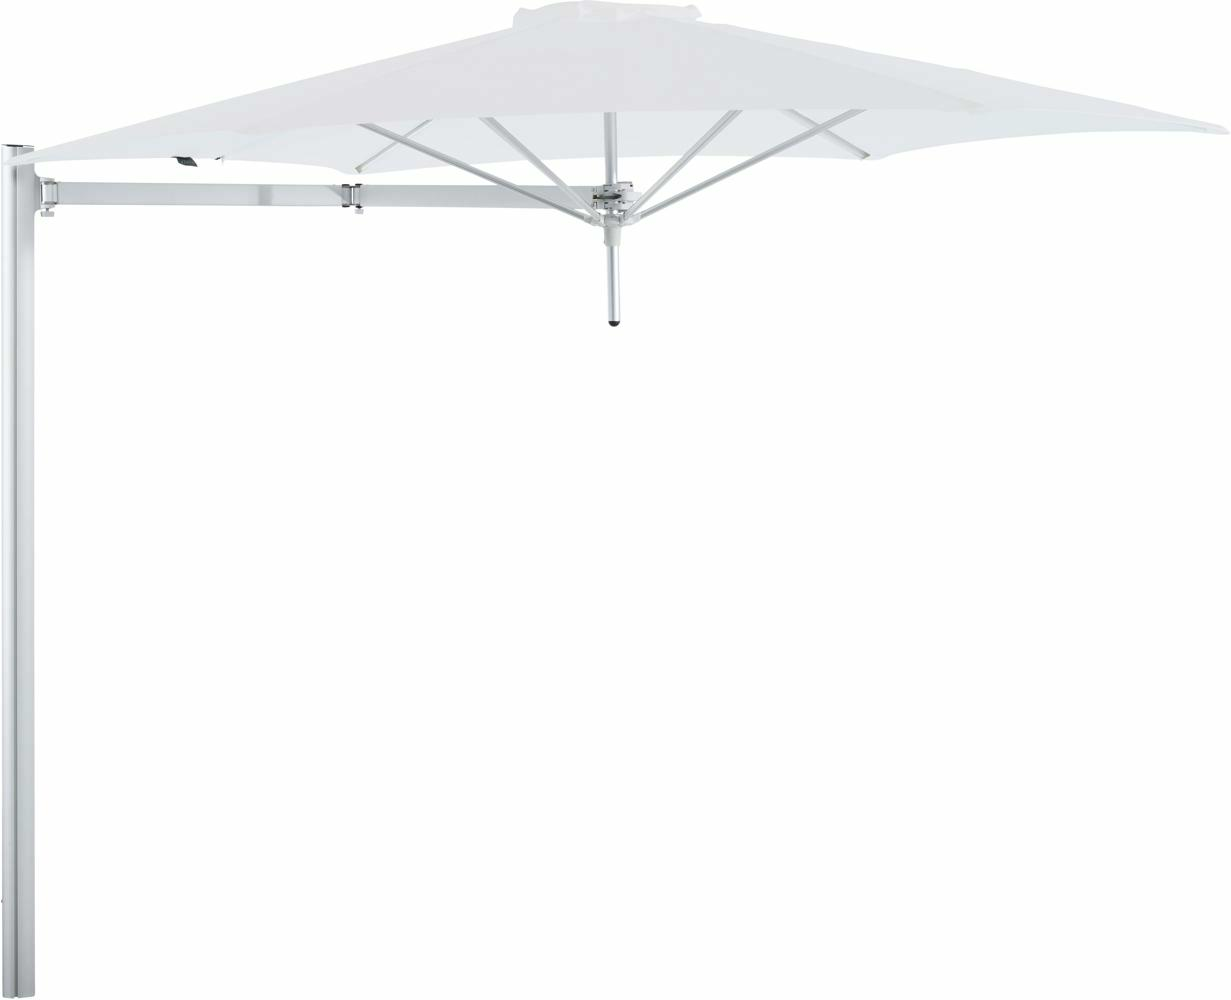 Paraflex cantilever umbrella round 3 m with Natural fabric and a Neo arm